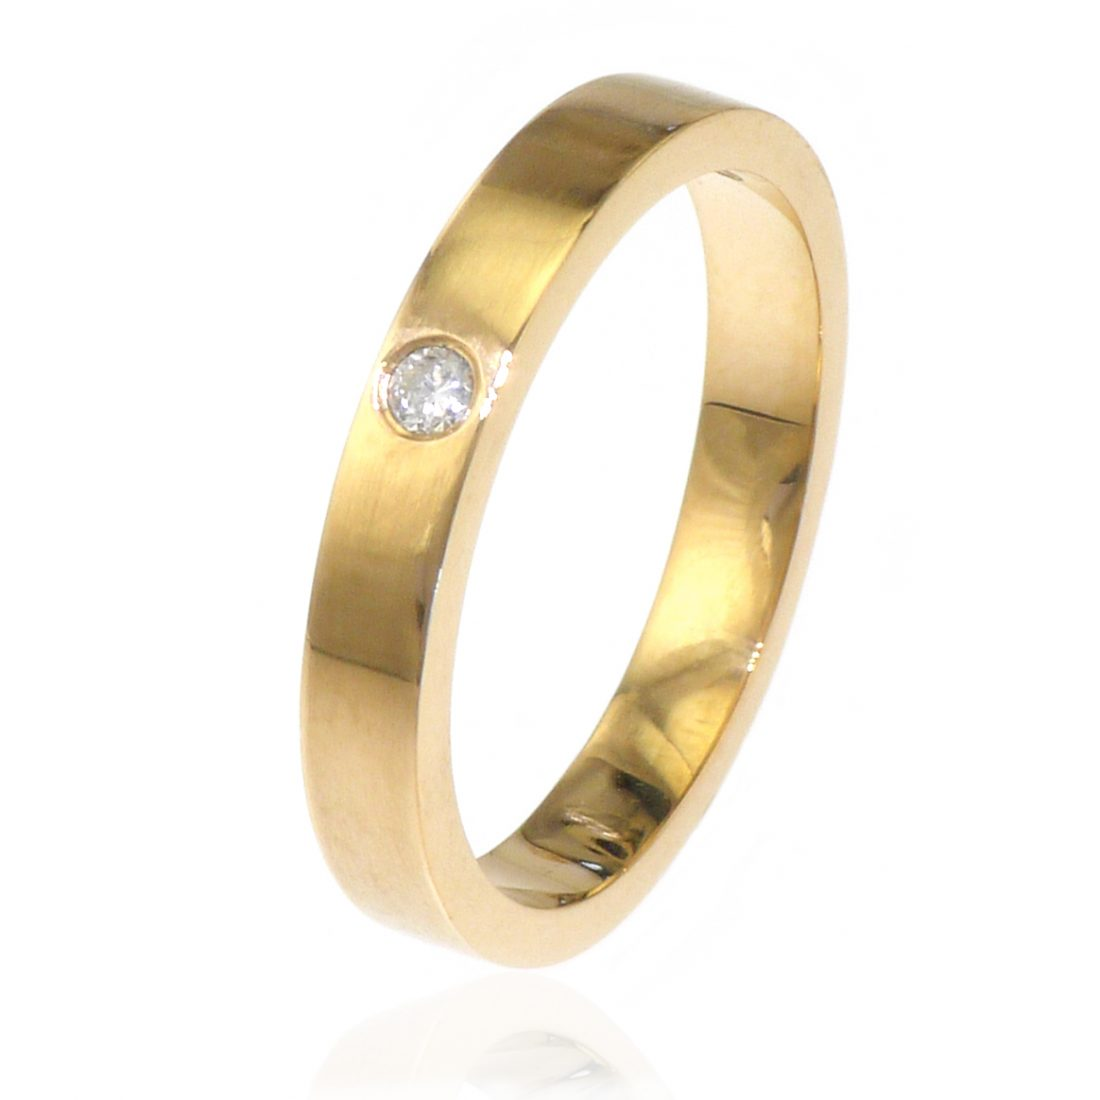 Diamond Wedding Ring in 18ct Gold